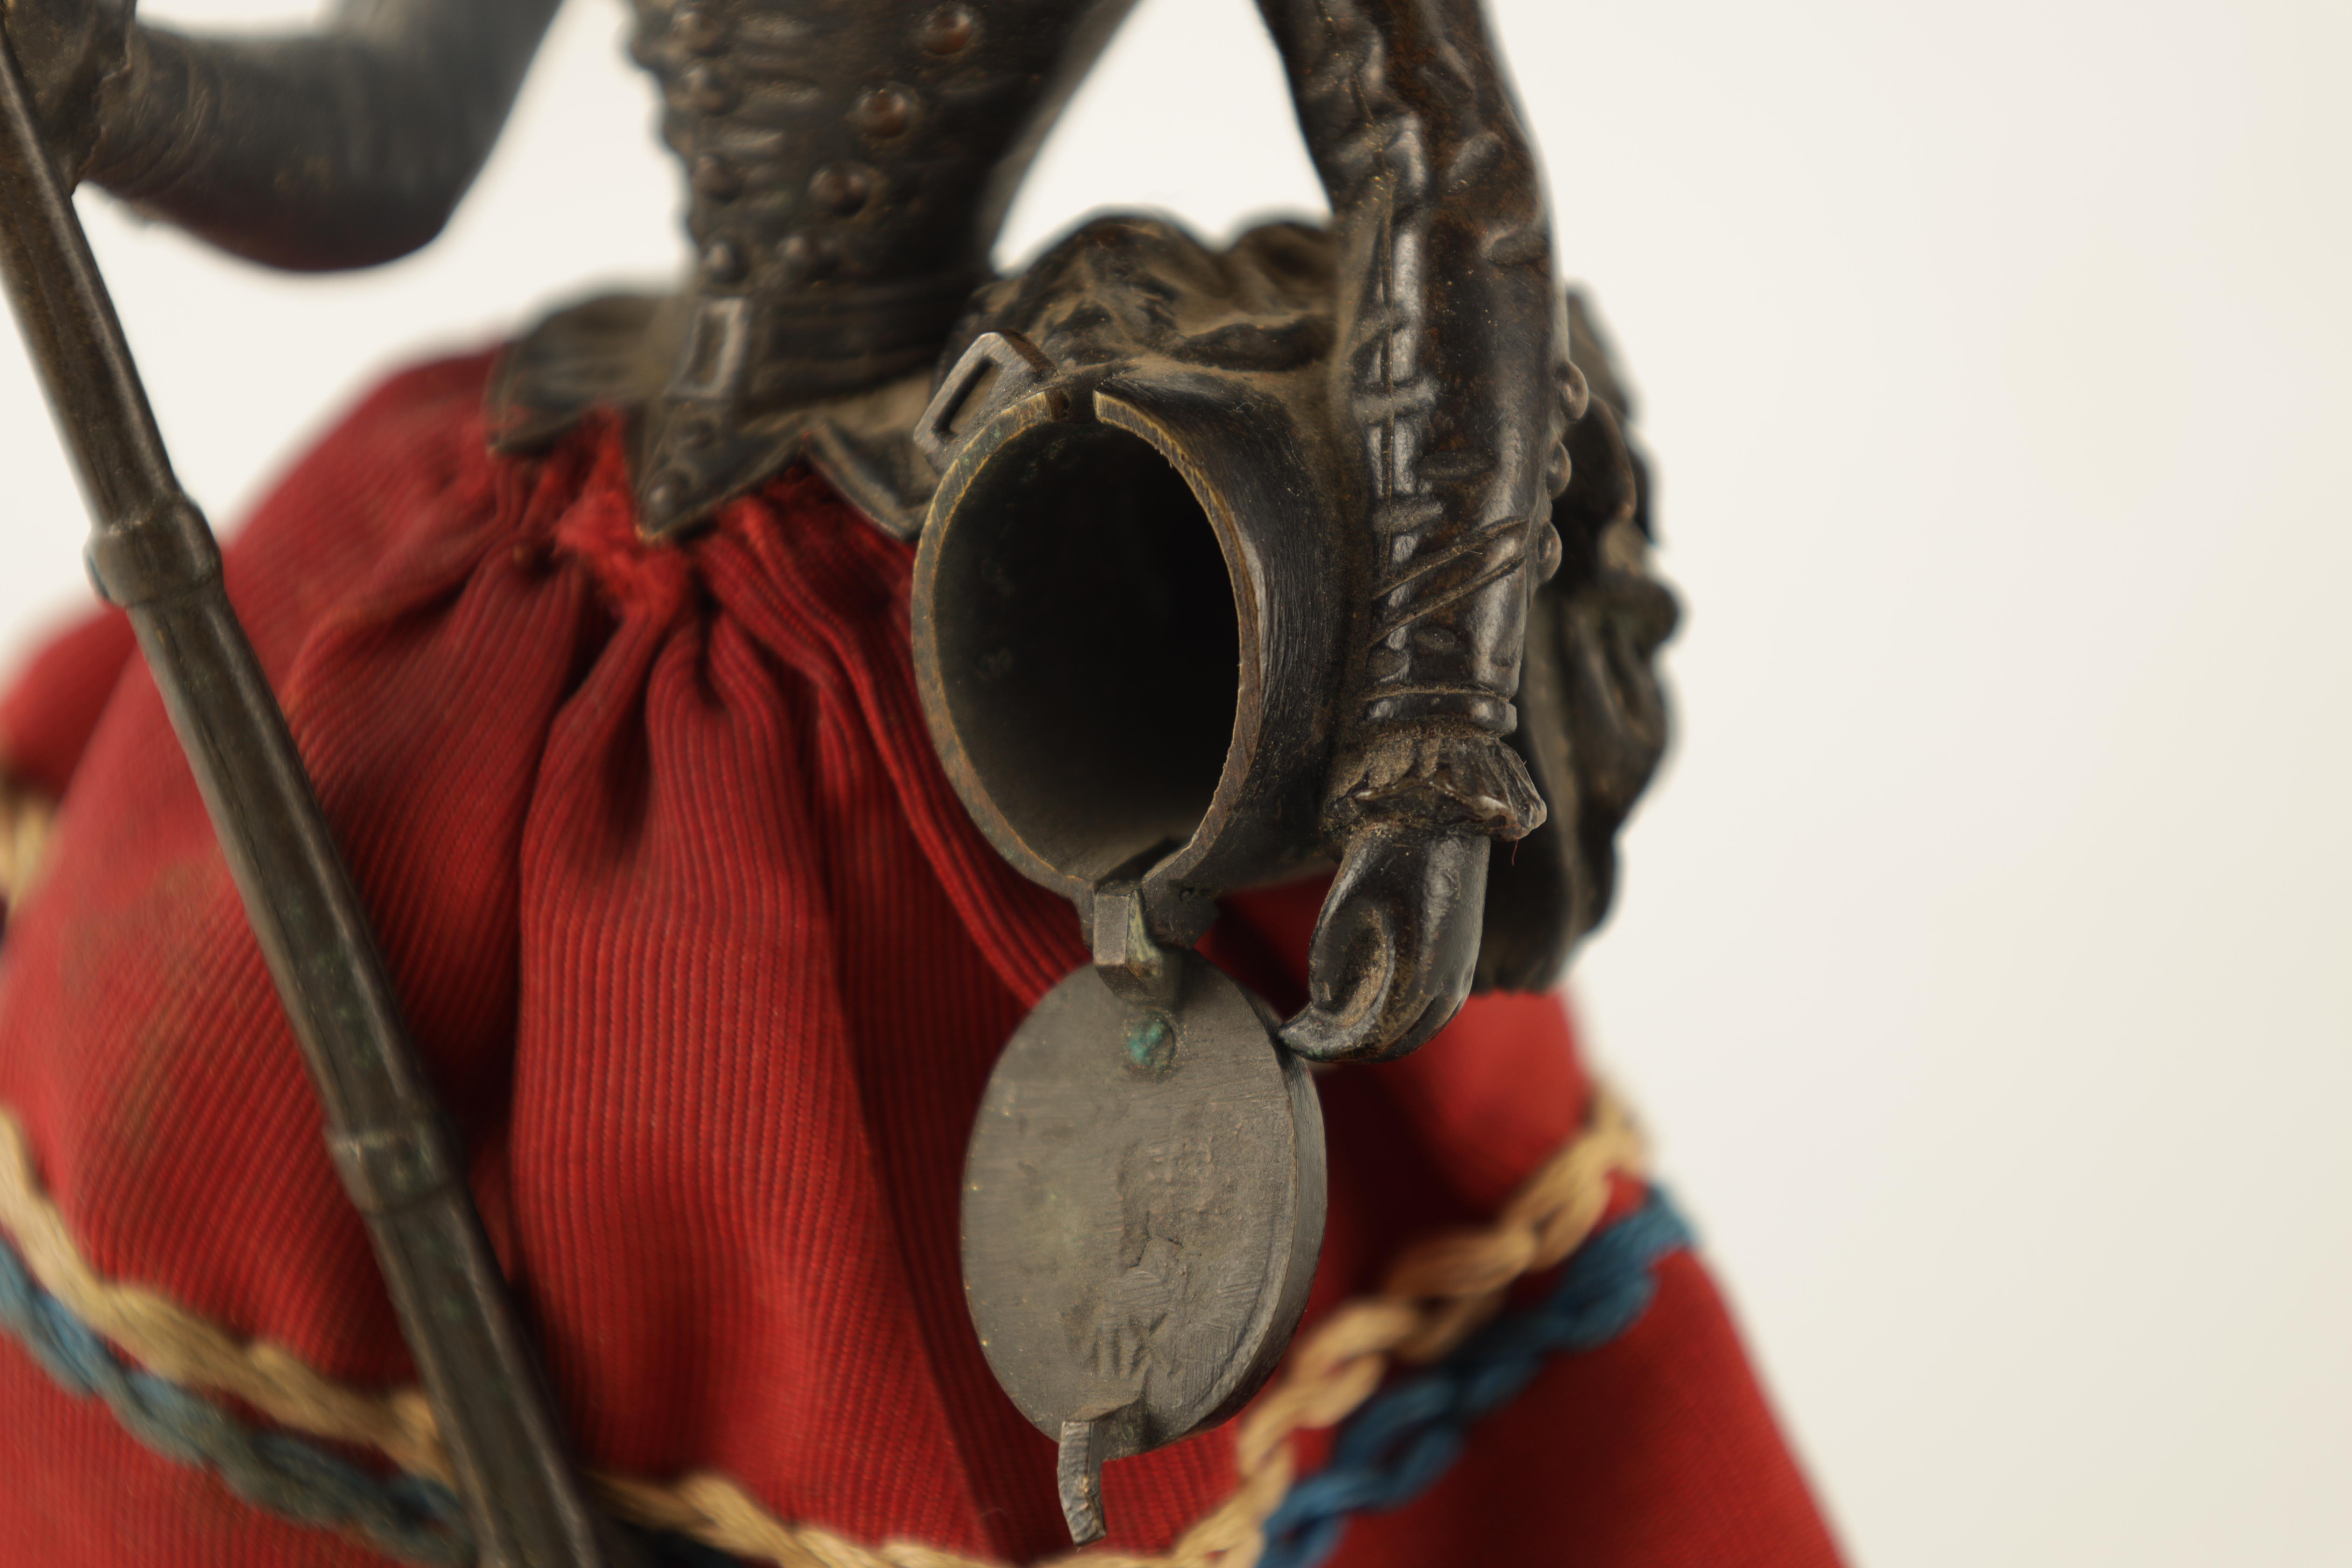 A LATE 19TH CENTURY NOVELTY BRONZE DESK COMPENDIUM DEPICTING A LADY HOLDING A RIFFLE with red - Image 6 of 10